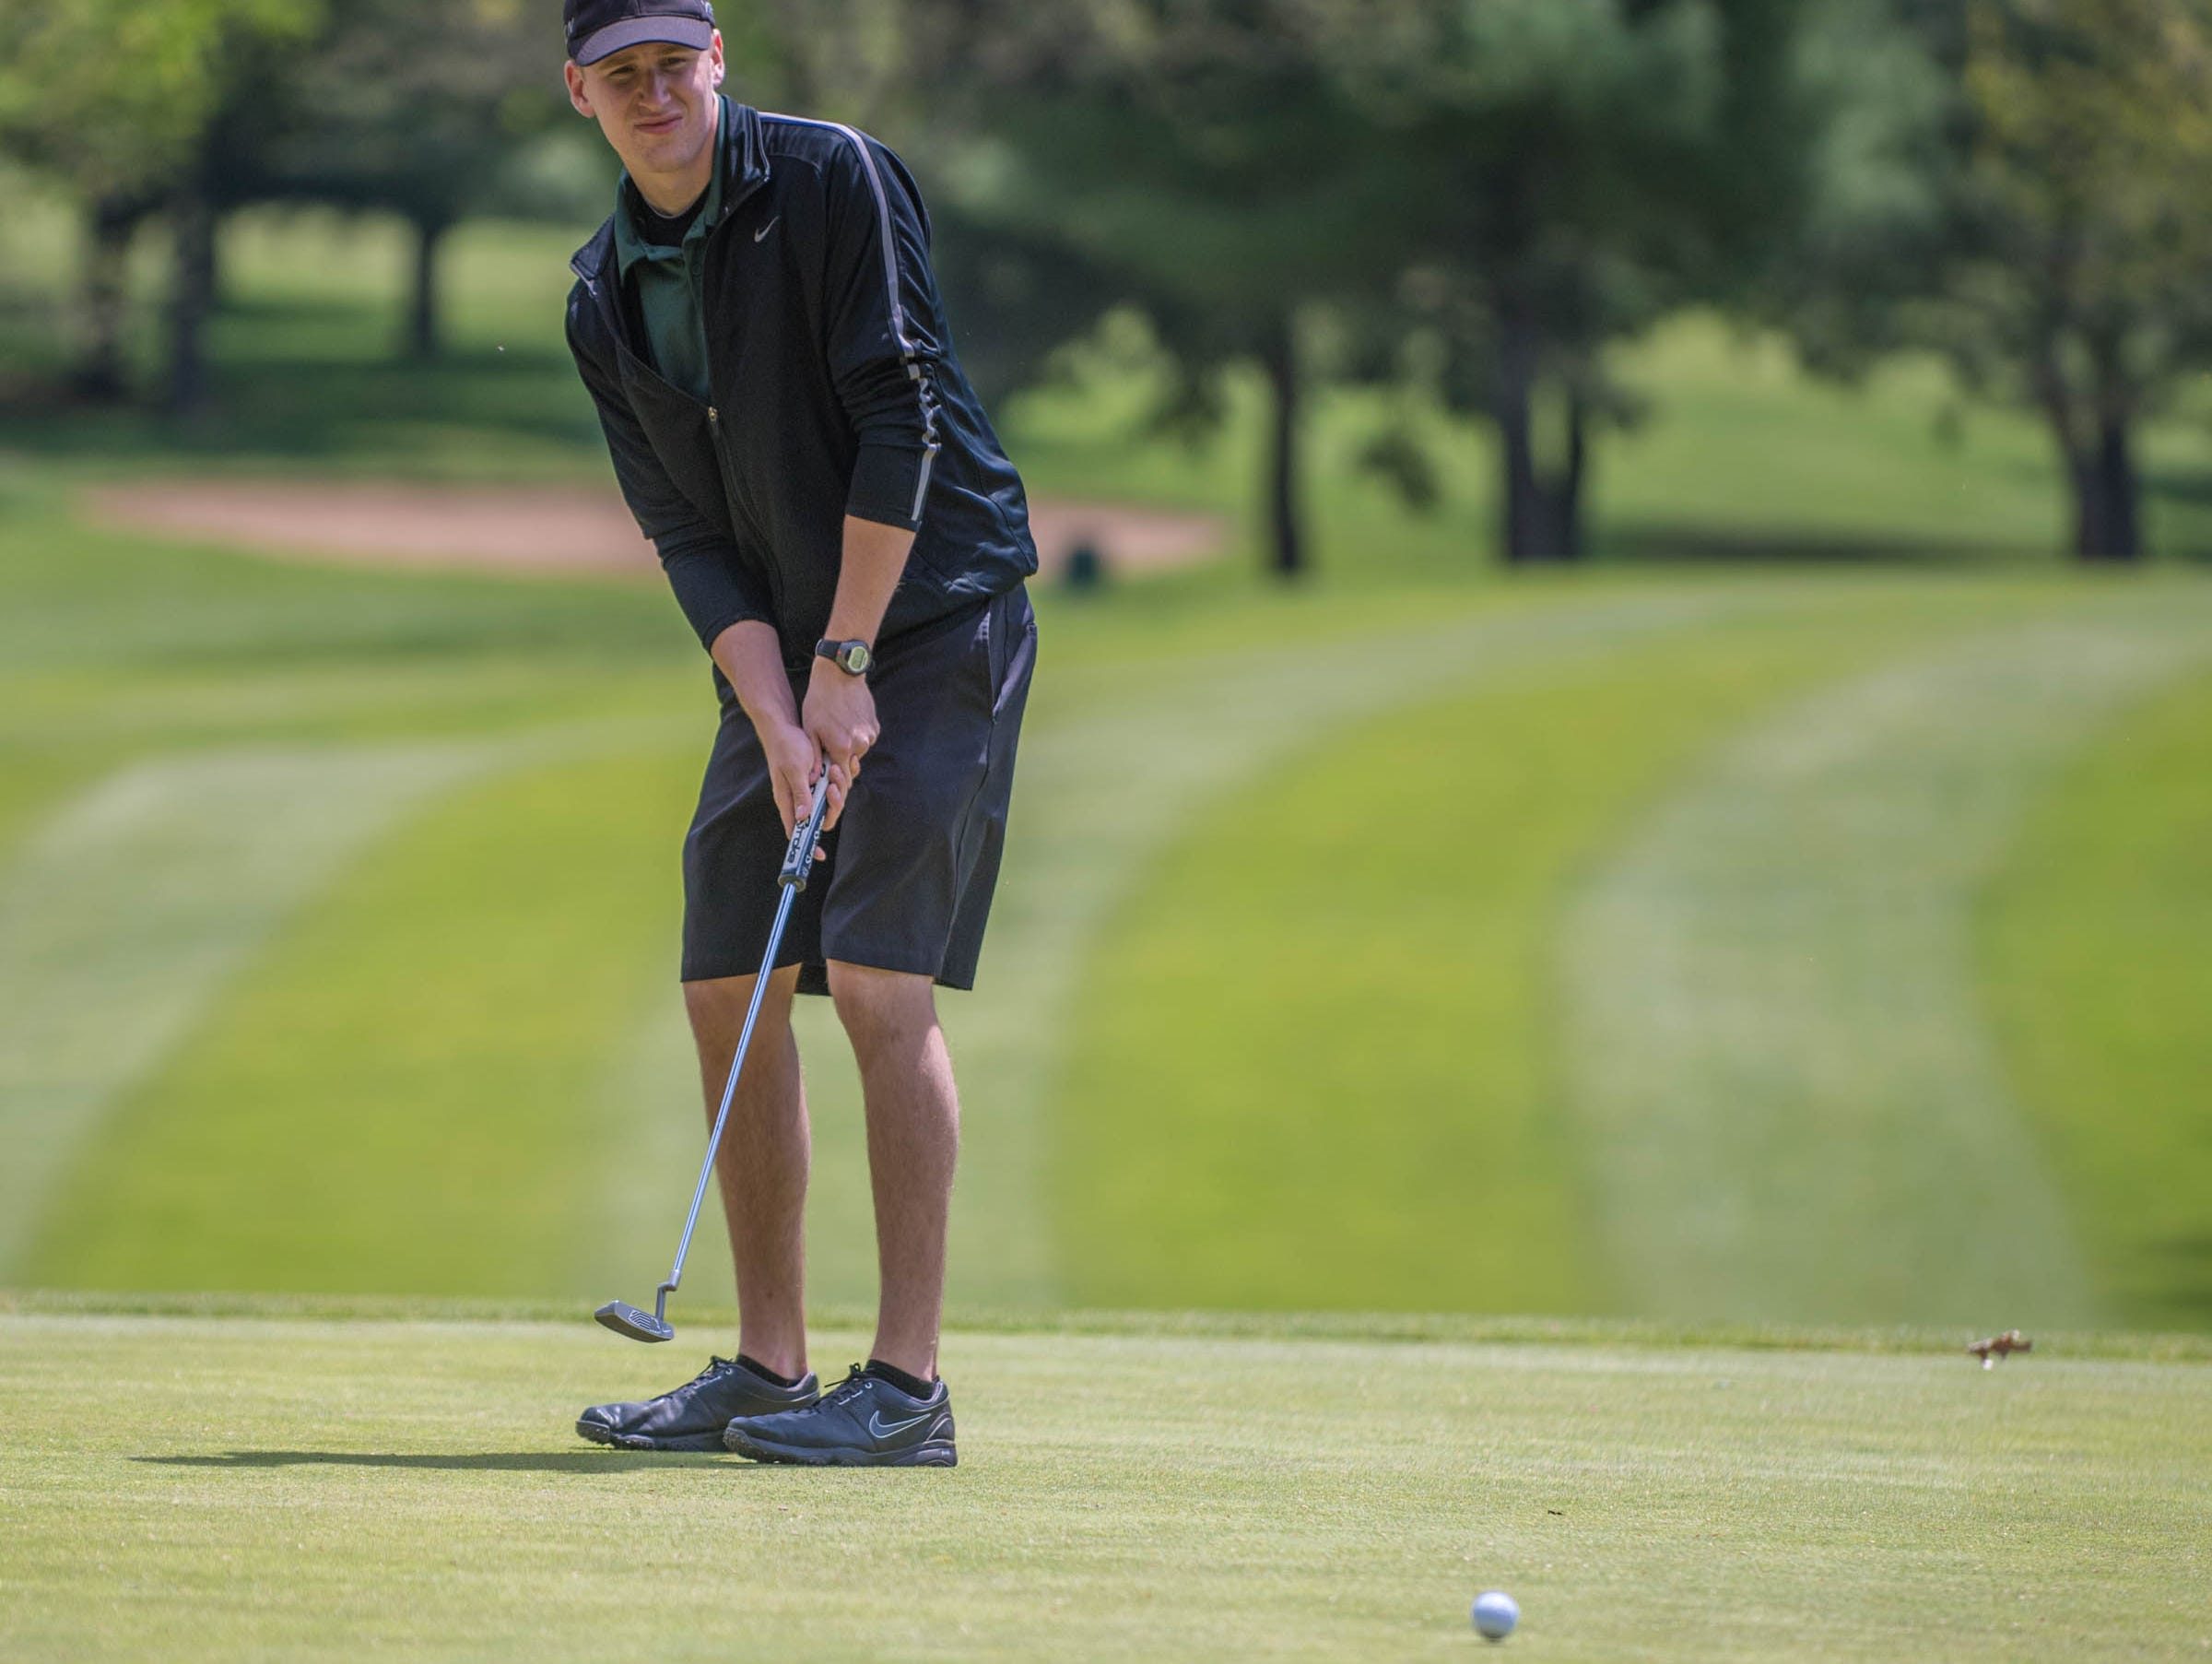 Pennfield senior Chase Williamson hits his putt during All City High School Golf at Riverside Golf Club on Friday.